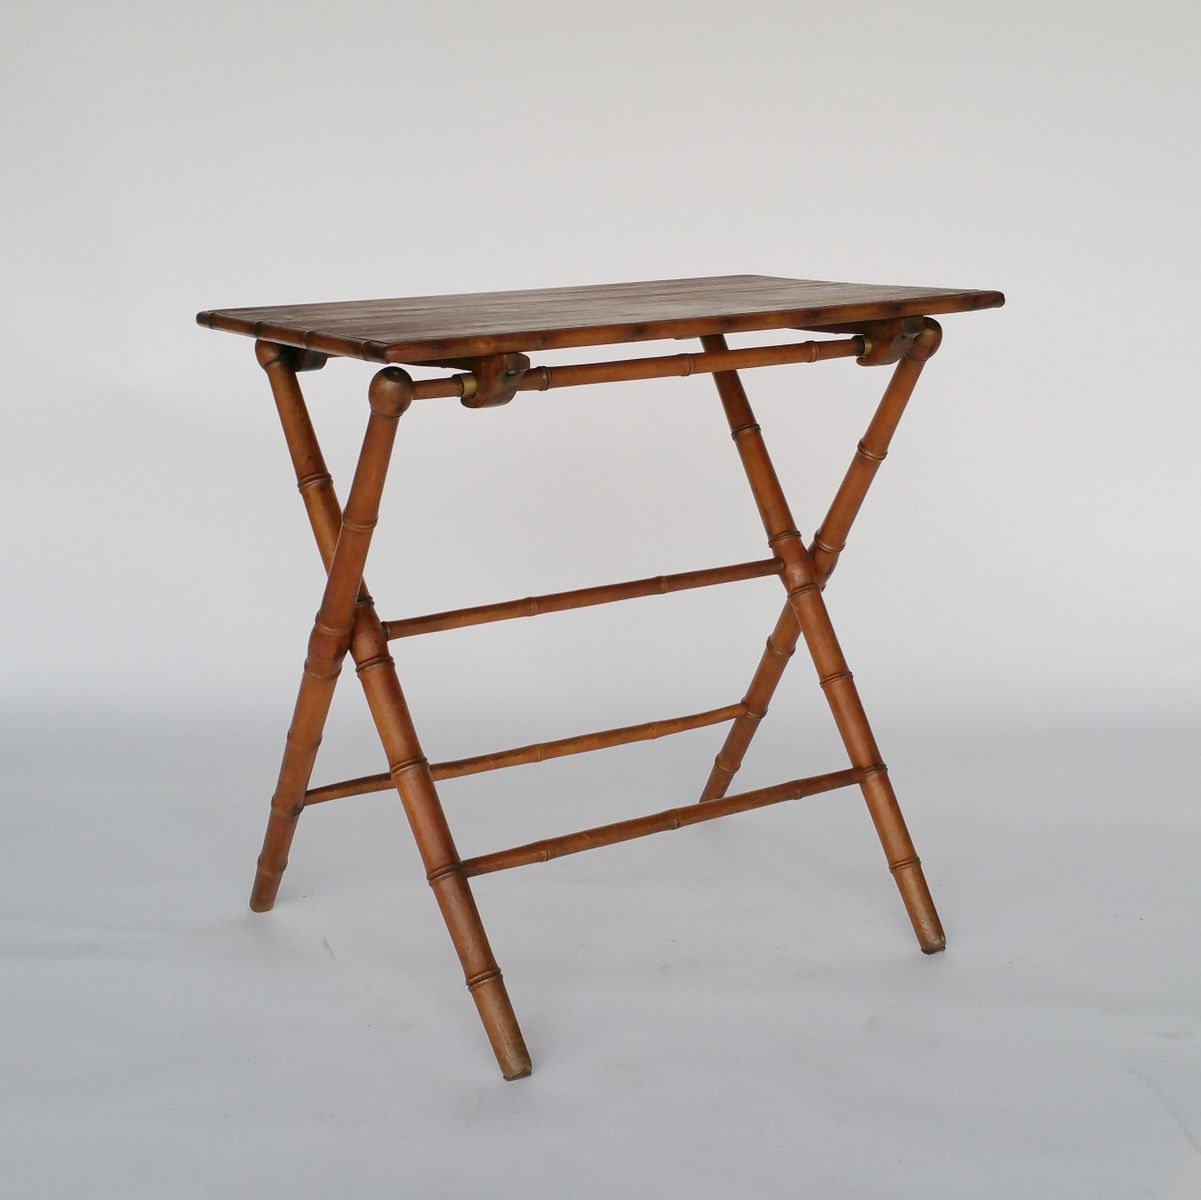 Vintage faux bamboo wooden folding table for sale at pamono for 52 folding table